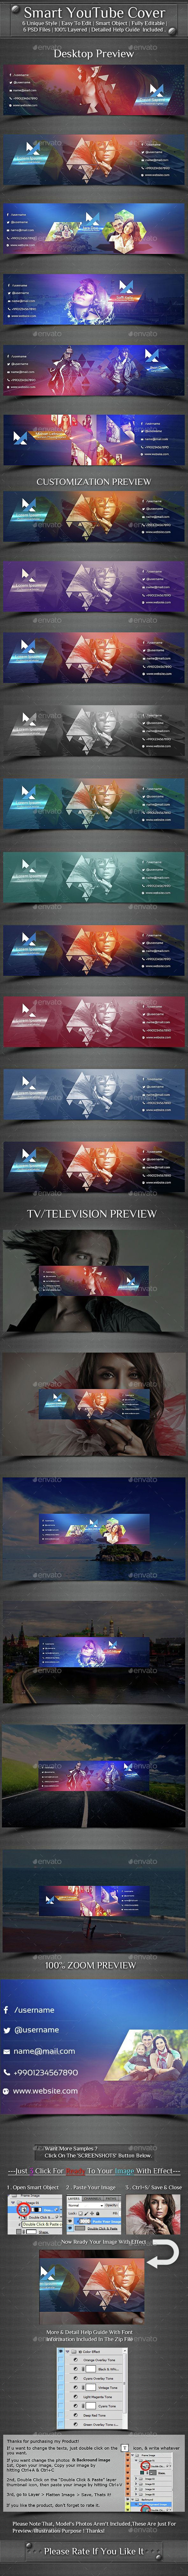 Smart Youtube Cover Template Psd Download Here Httpgraphicriver